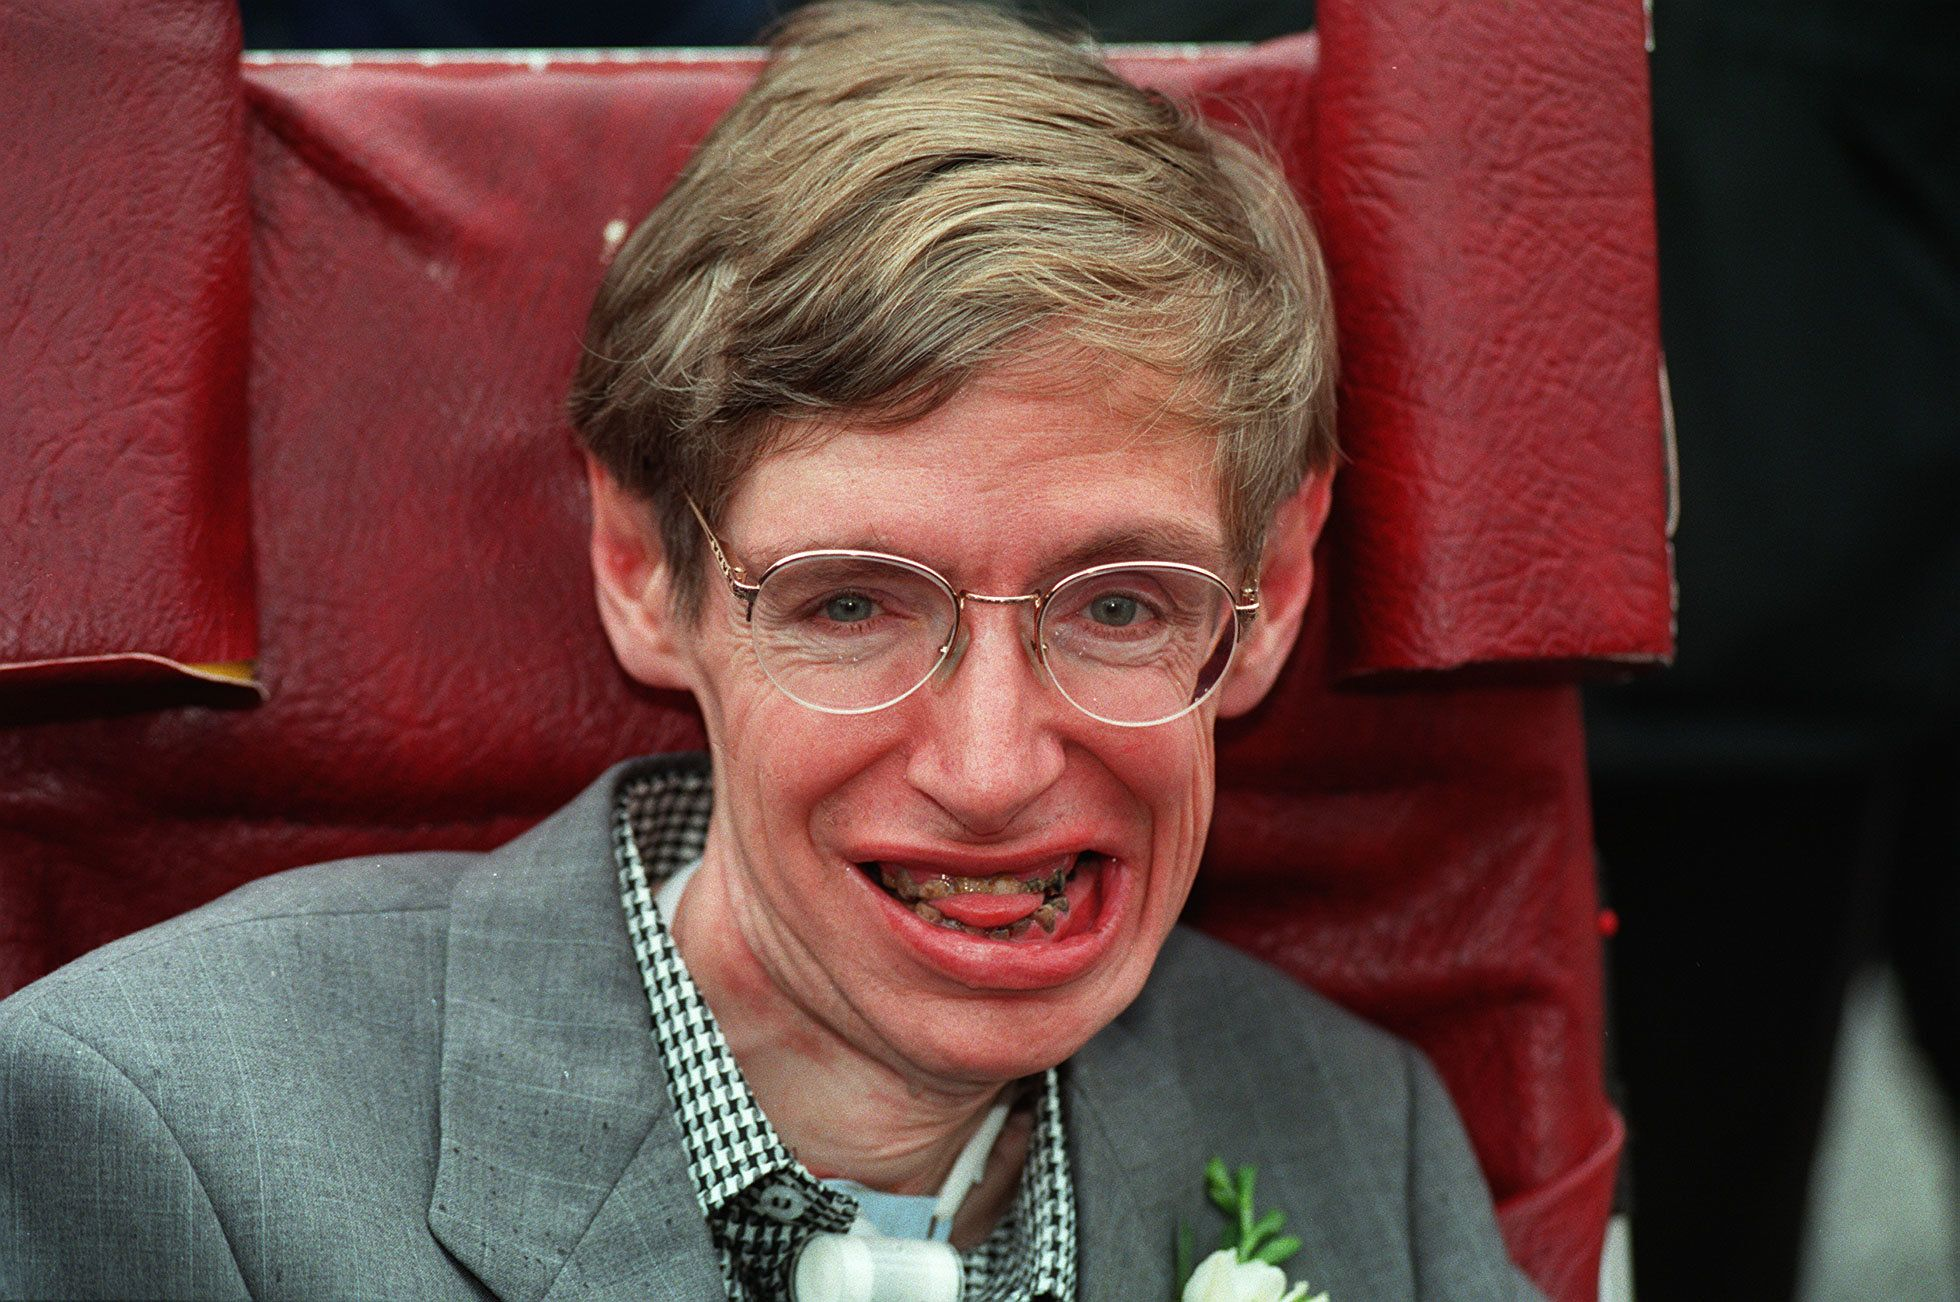 PA NEWS PHOTO 15/9/95  PROFESSOR SCIENTIST STEPHEN HAWKING WHO SUFFERS FROM MOTOR NEURONE DISEASE AT HIS MARRIAGE CEREMONY TO BRIDE NURSE ELAINE MASON AT CAMBRIDGE REGISTRY OFFICE   (Photo by Michael Stephens - PA Images/PA Images via Getty Images)